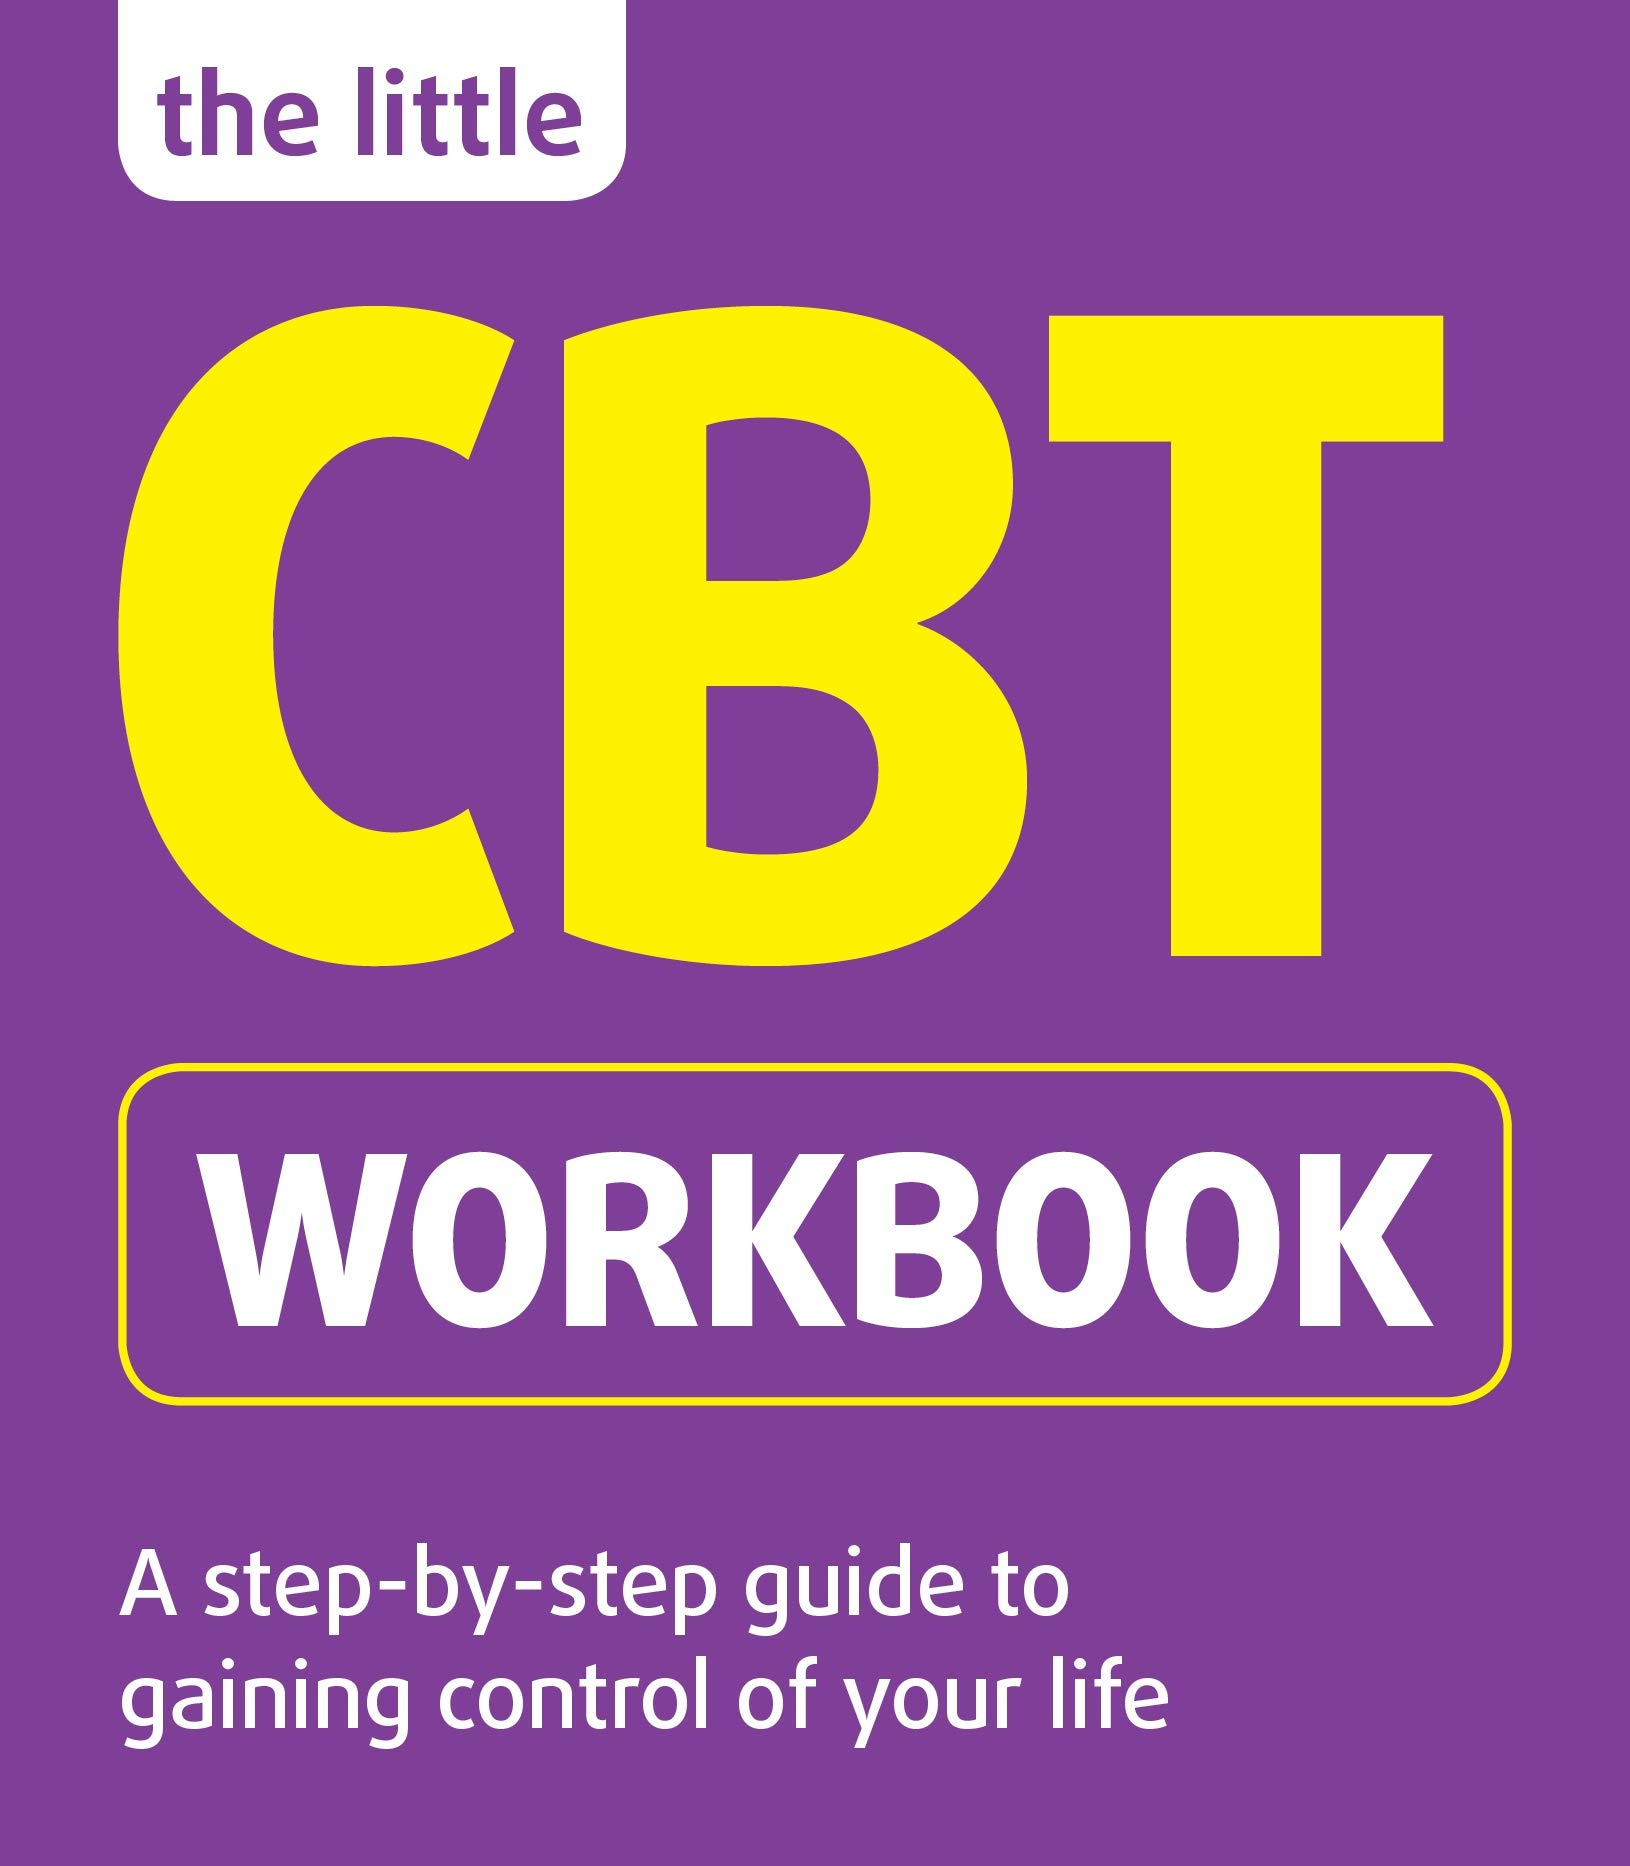 The Little CBT Workbook: Amazon co uk: Dr  Michael Sinclair